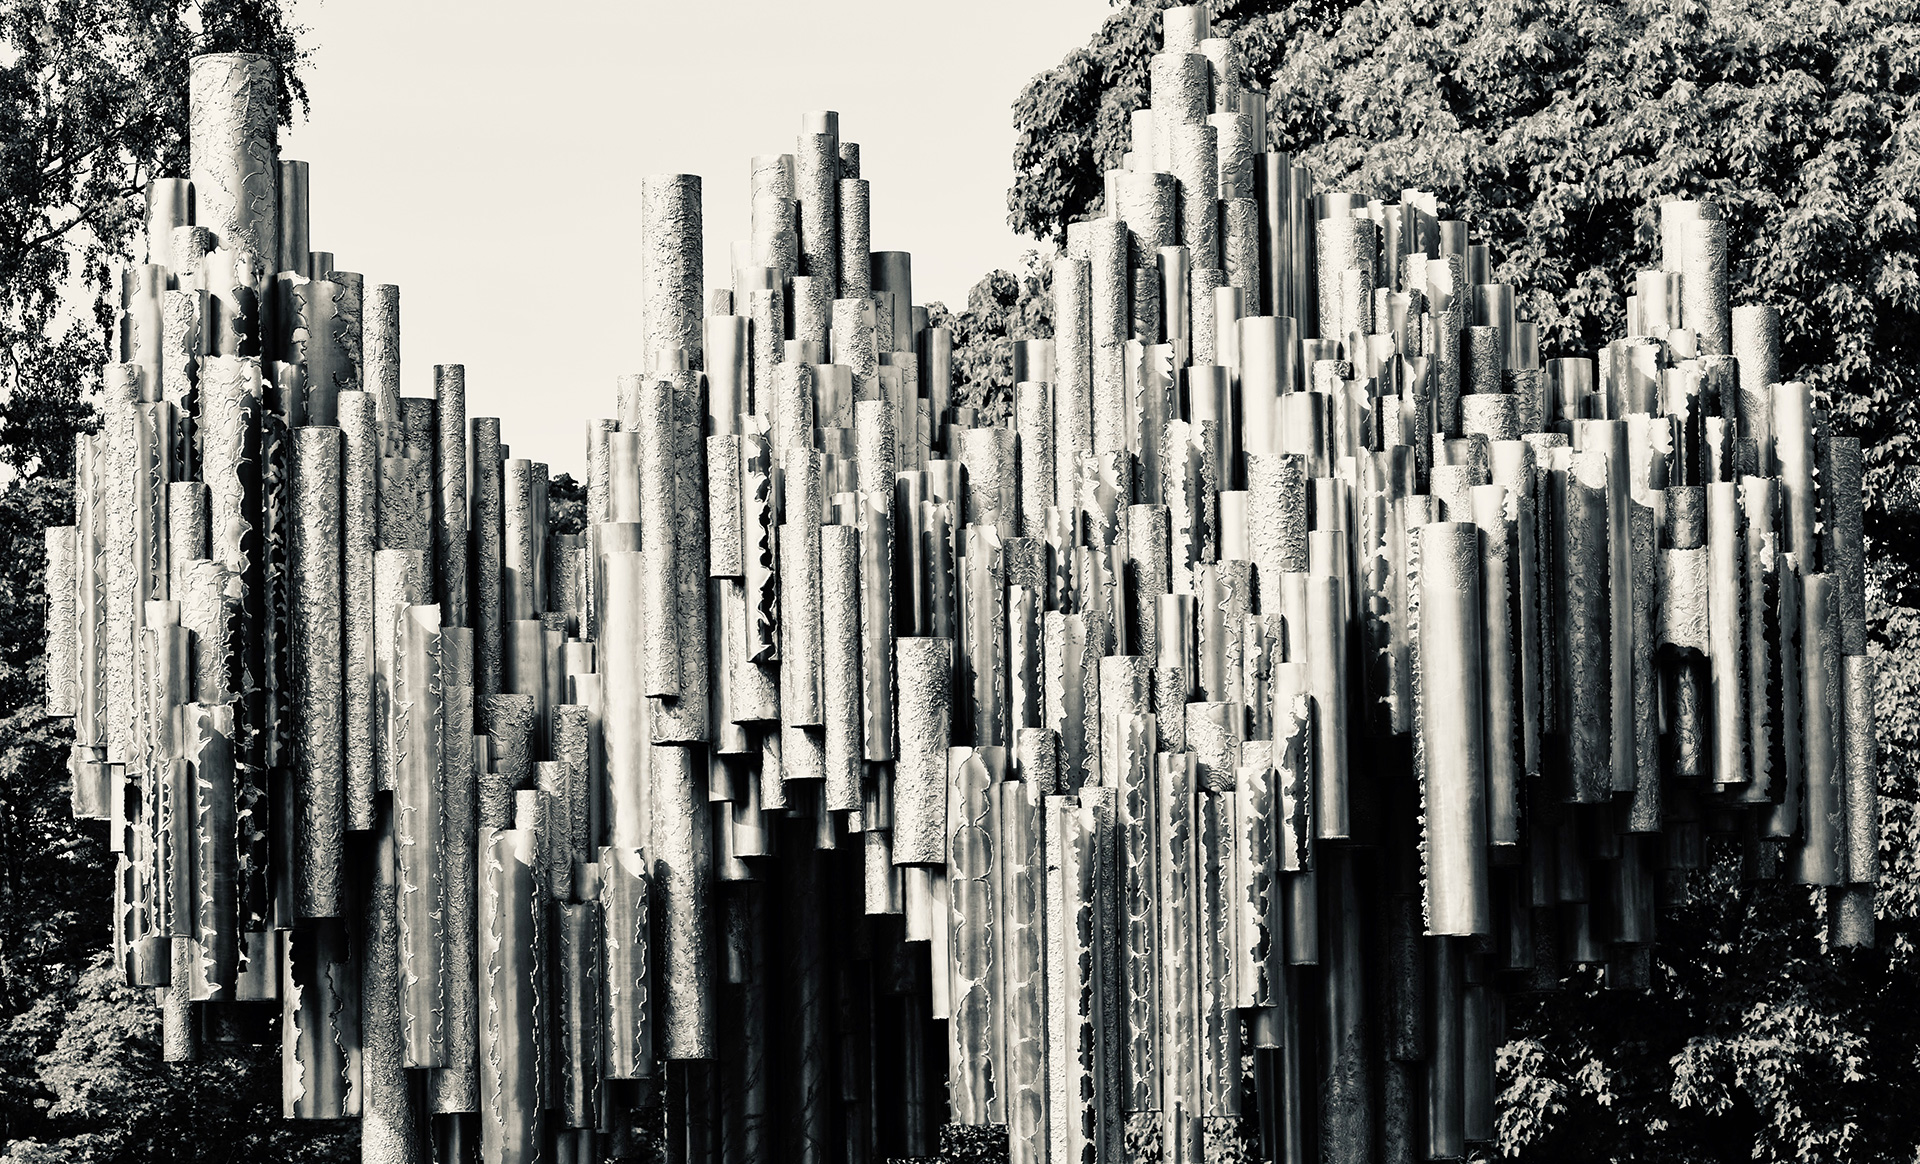 Sibelius Monument is a cluster of over 600 steel ducts crafted to resemble a sound wave made of organ pipes| Helsinki | Finland| STIRworld